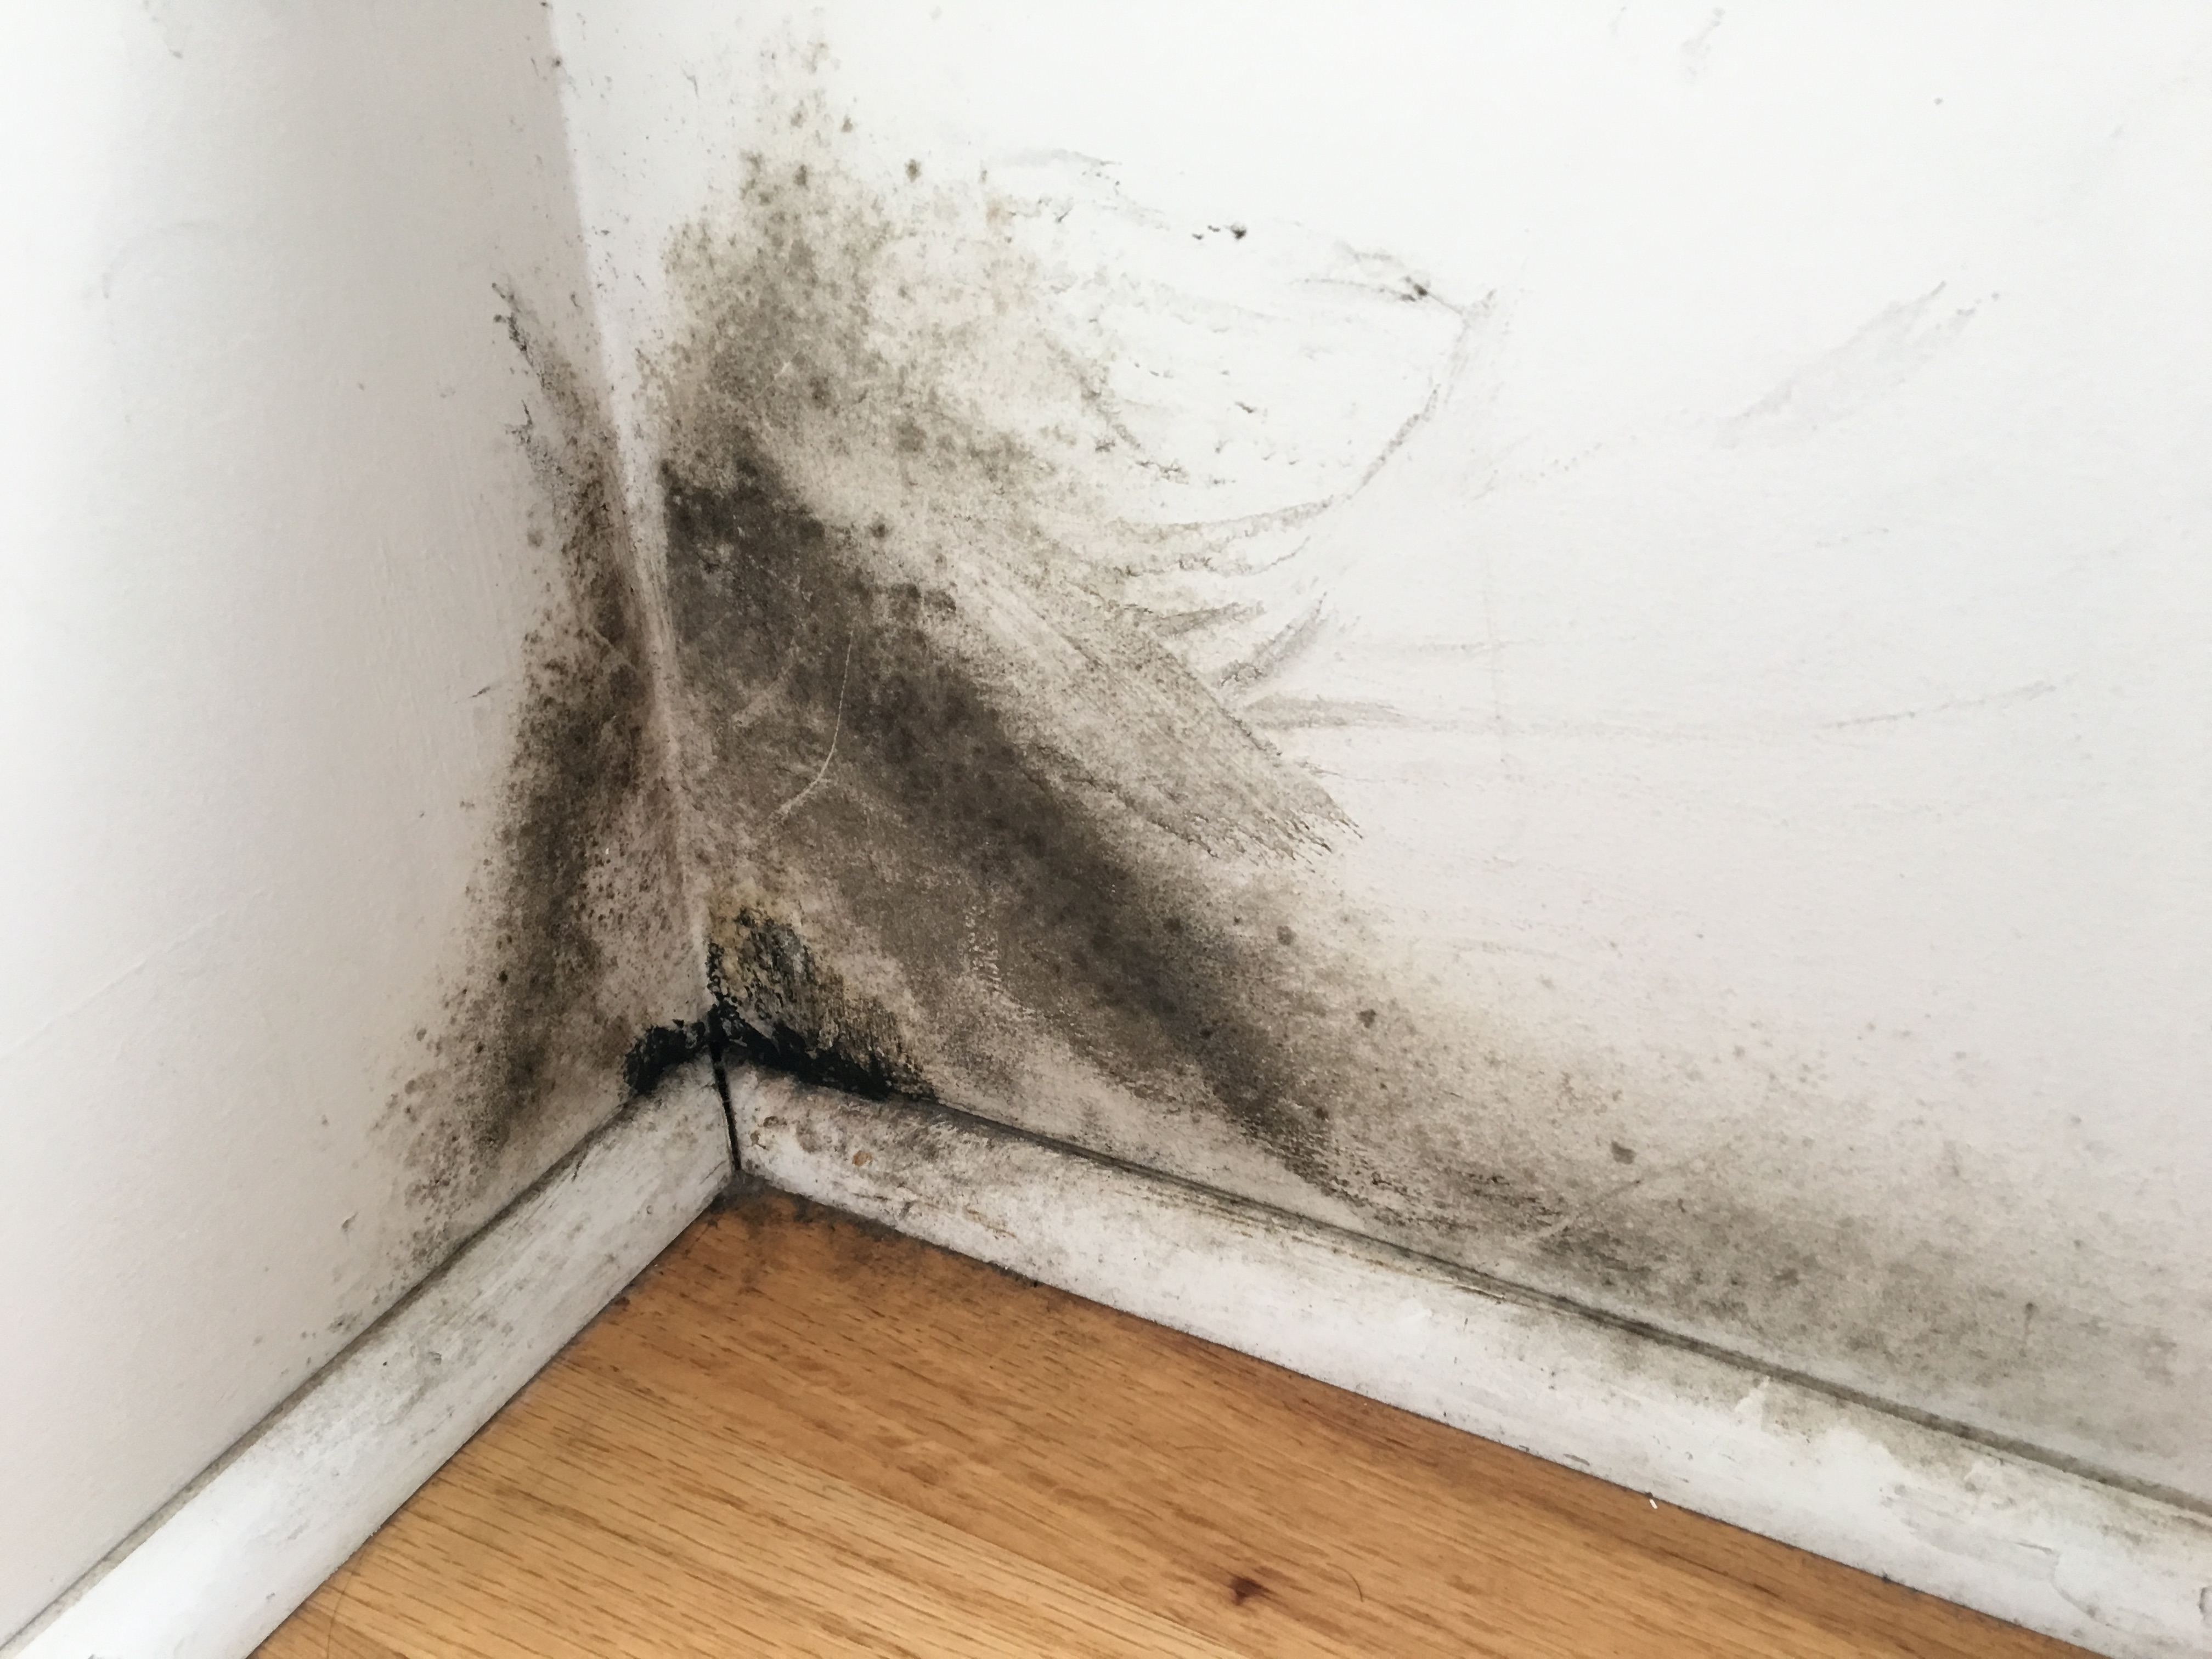 Mold Removal Amp Remediation Services In Kanata